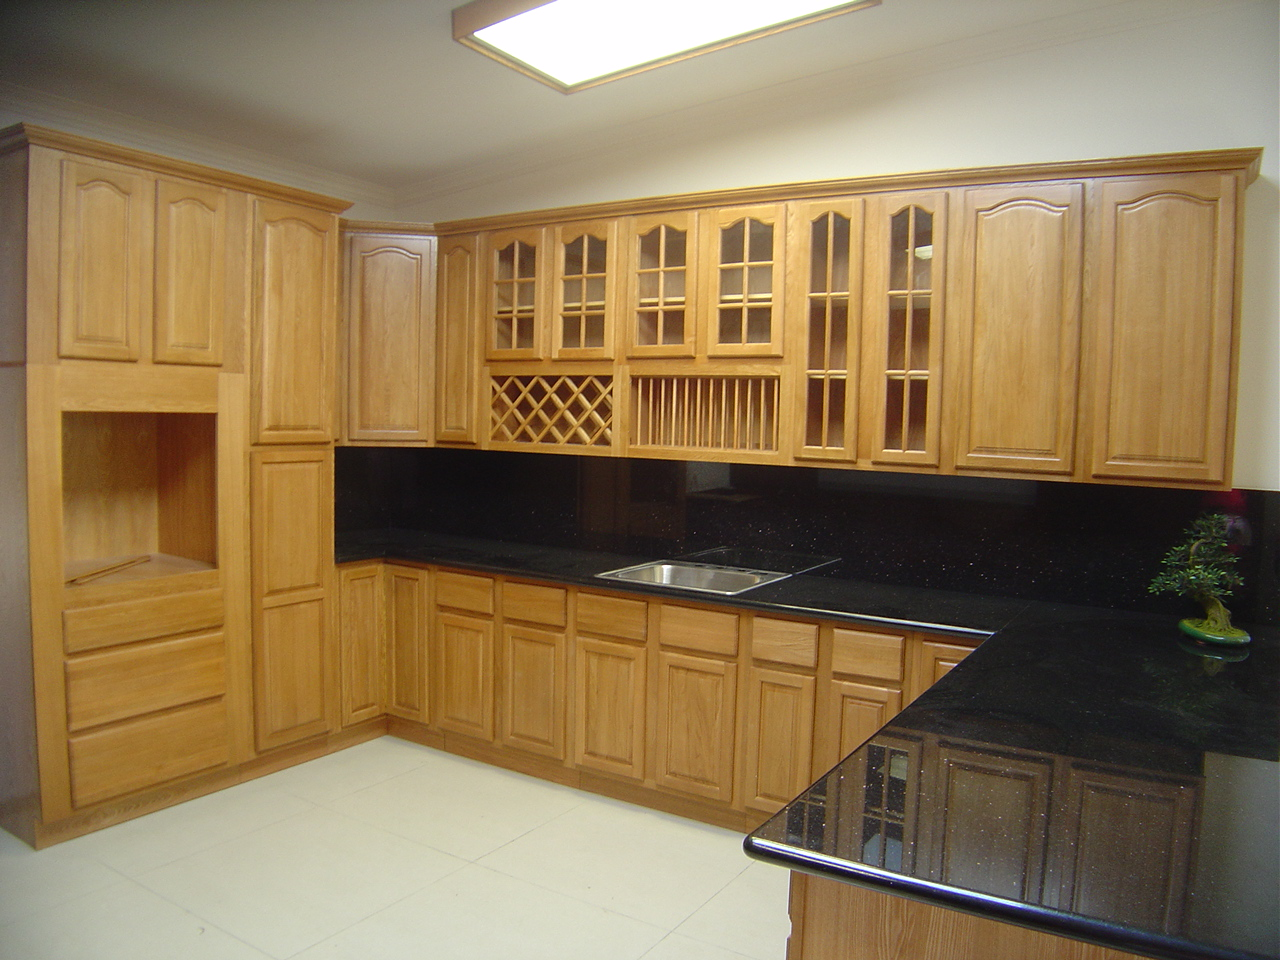 How To Remove Kitchen Cabinet Remove All Stainscom How To Remove Mold From Wooden Cabinets